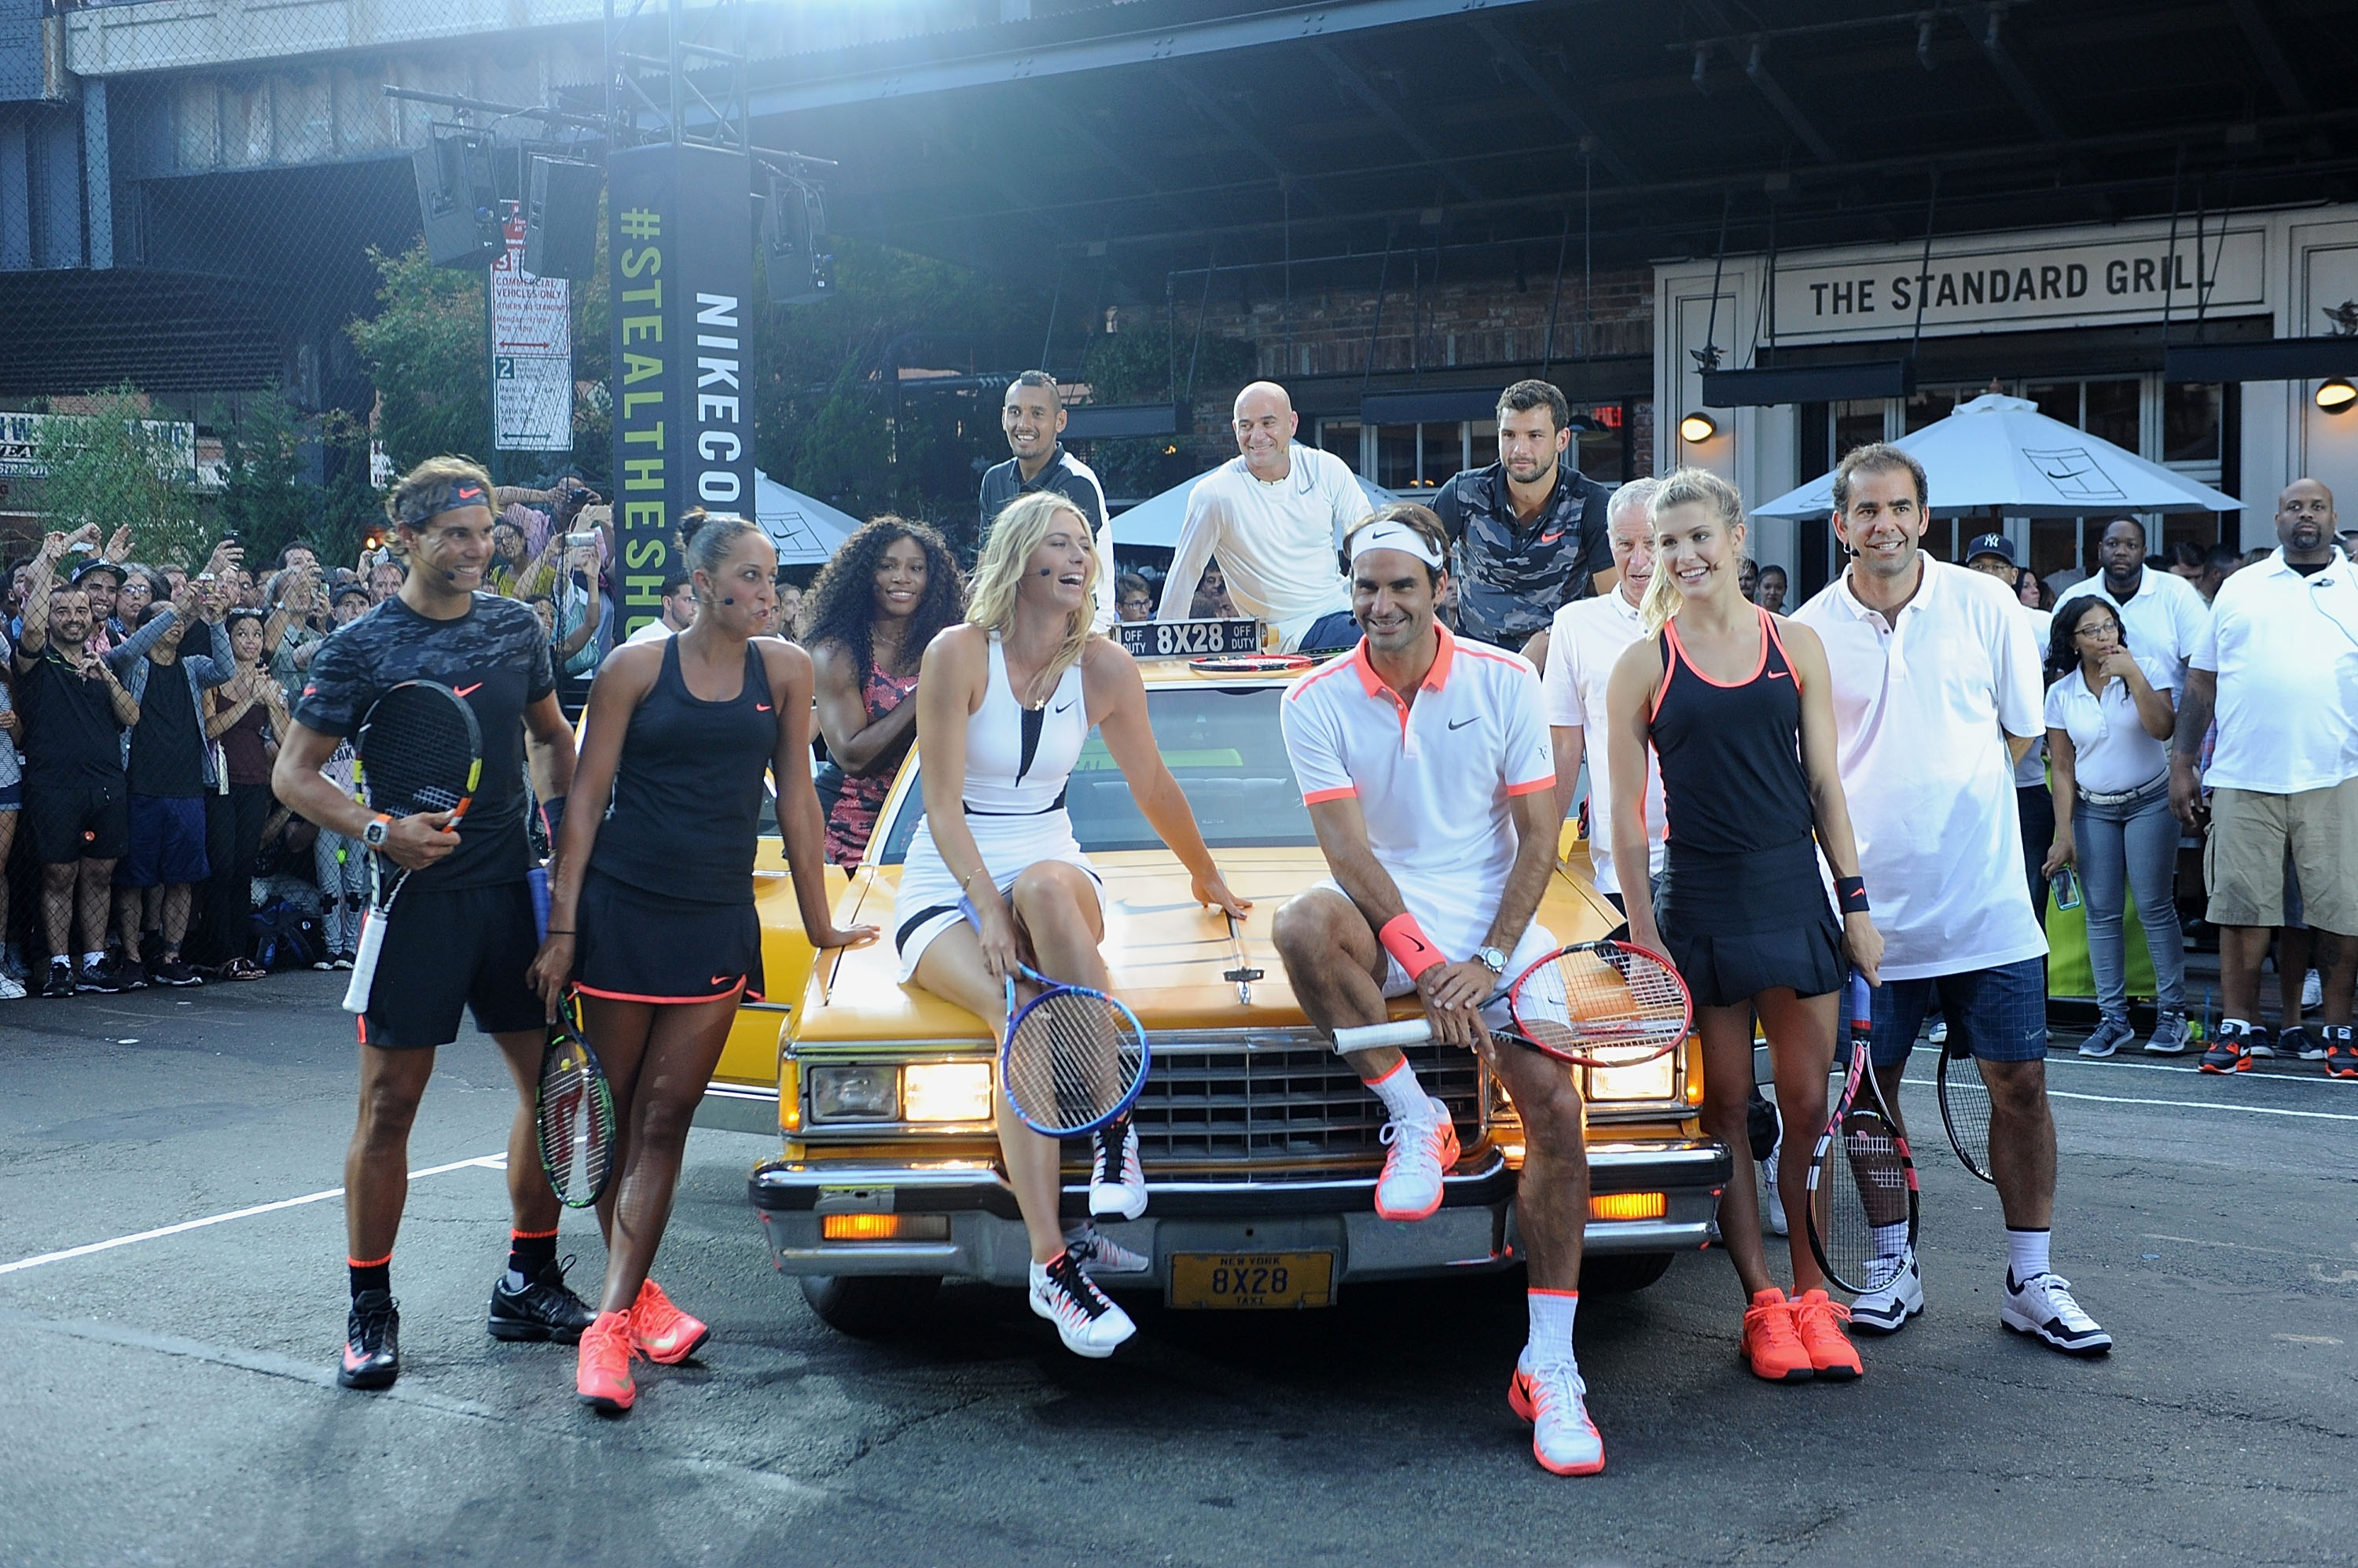 nick kyrgios and eugenie bouchard flirting Canadian tennis beauty eugenie bouchard has pulled out of the doubles tournaments after injuring her head in a locker room fall following her famously flirty match with nick kyrgios last night.